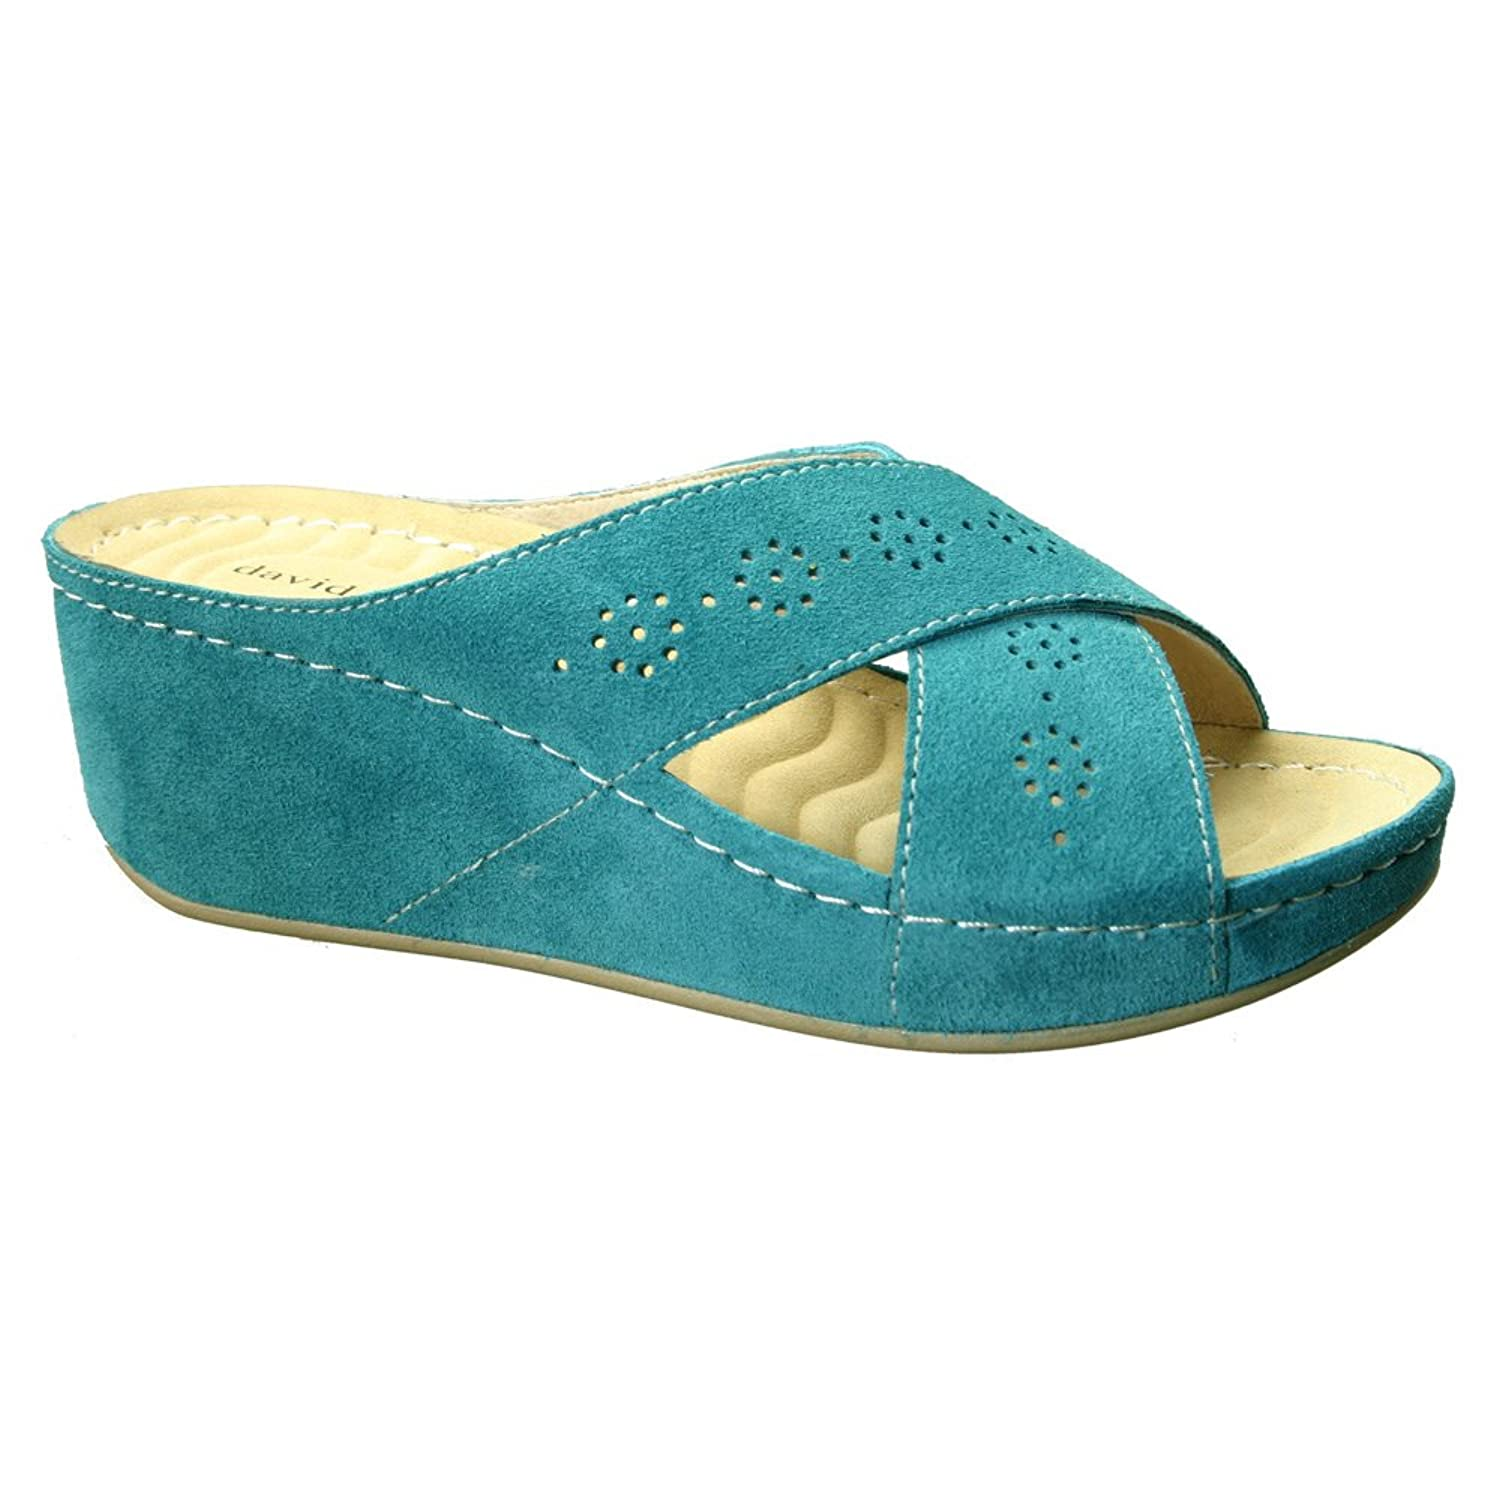 David Tate Womens Savanah Wedge Slide